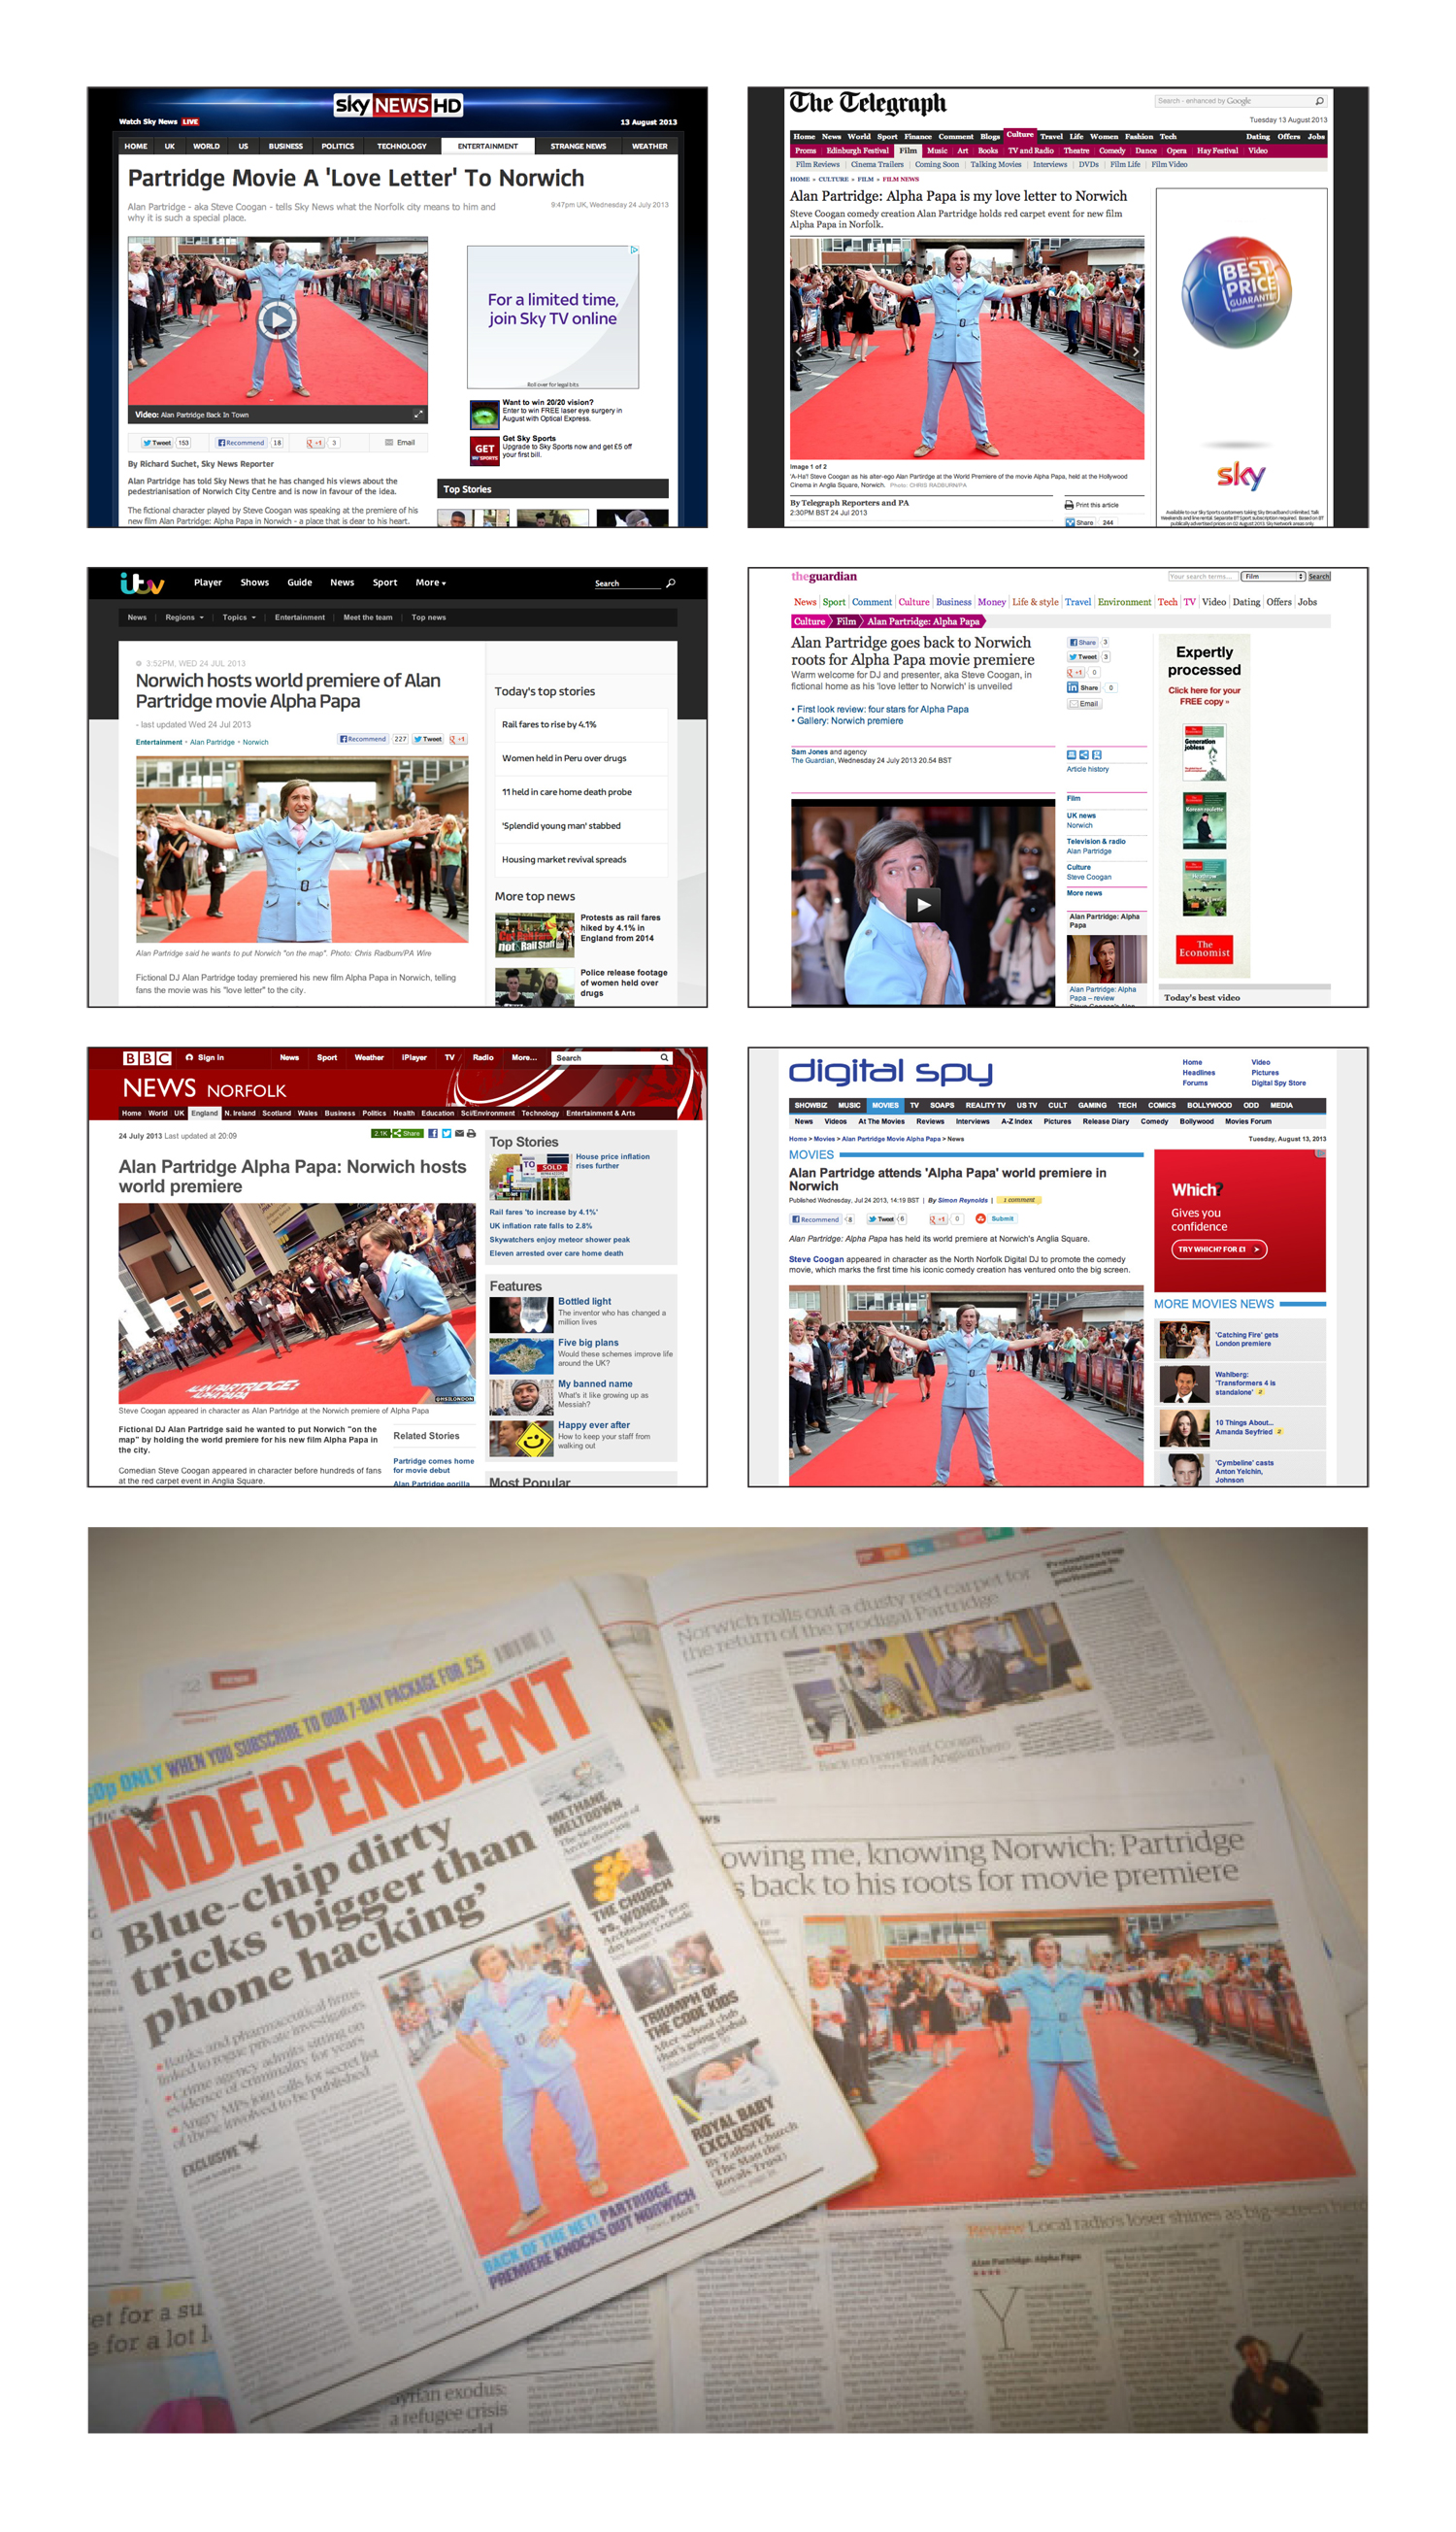 nationa media and pr coverage